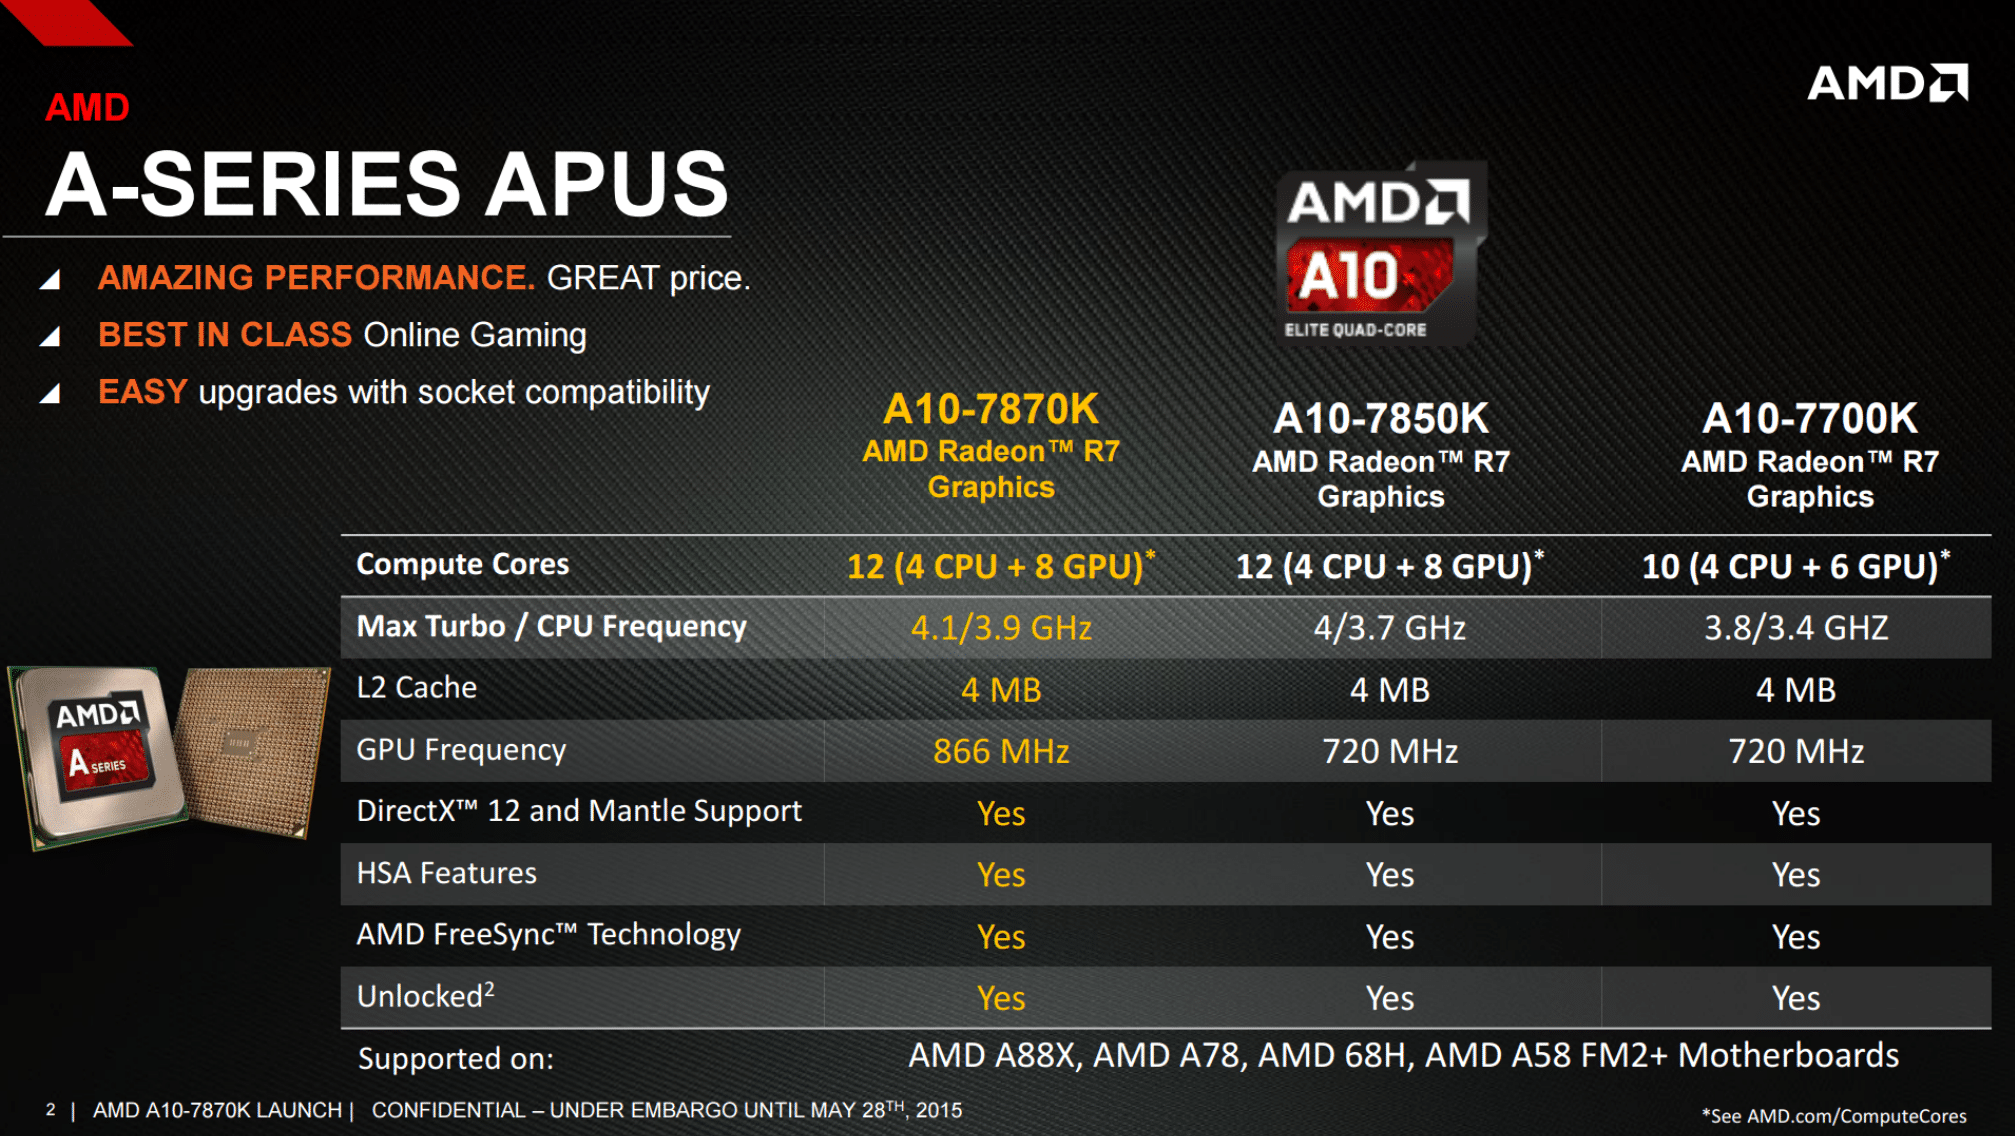 Amd-Series APUs